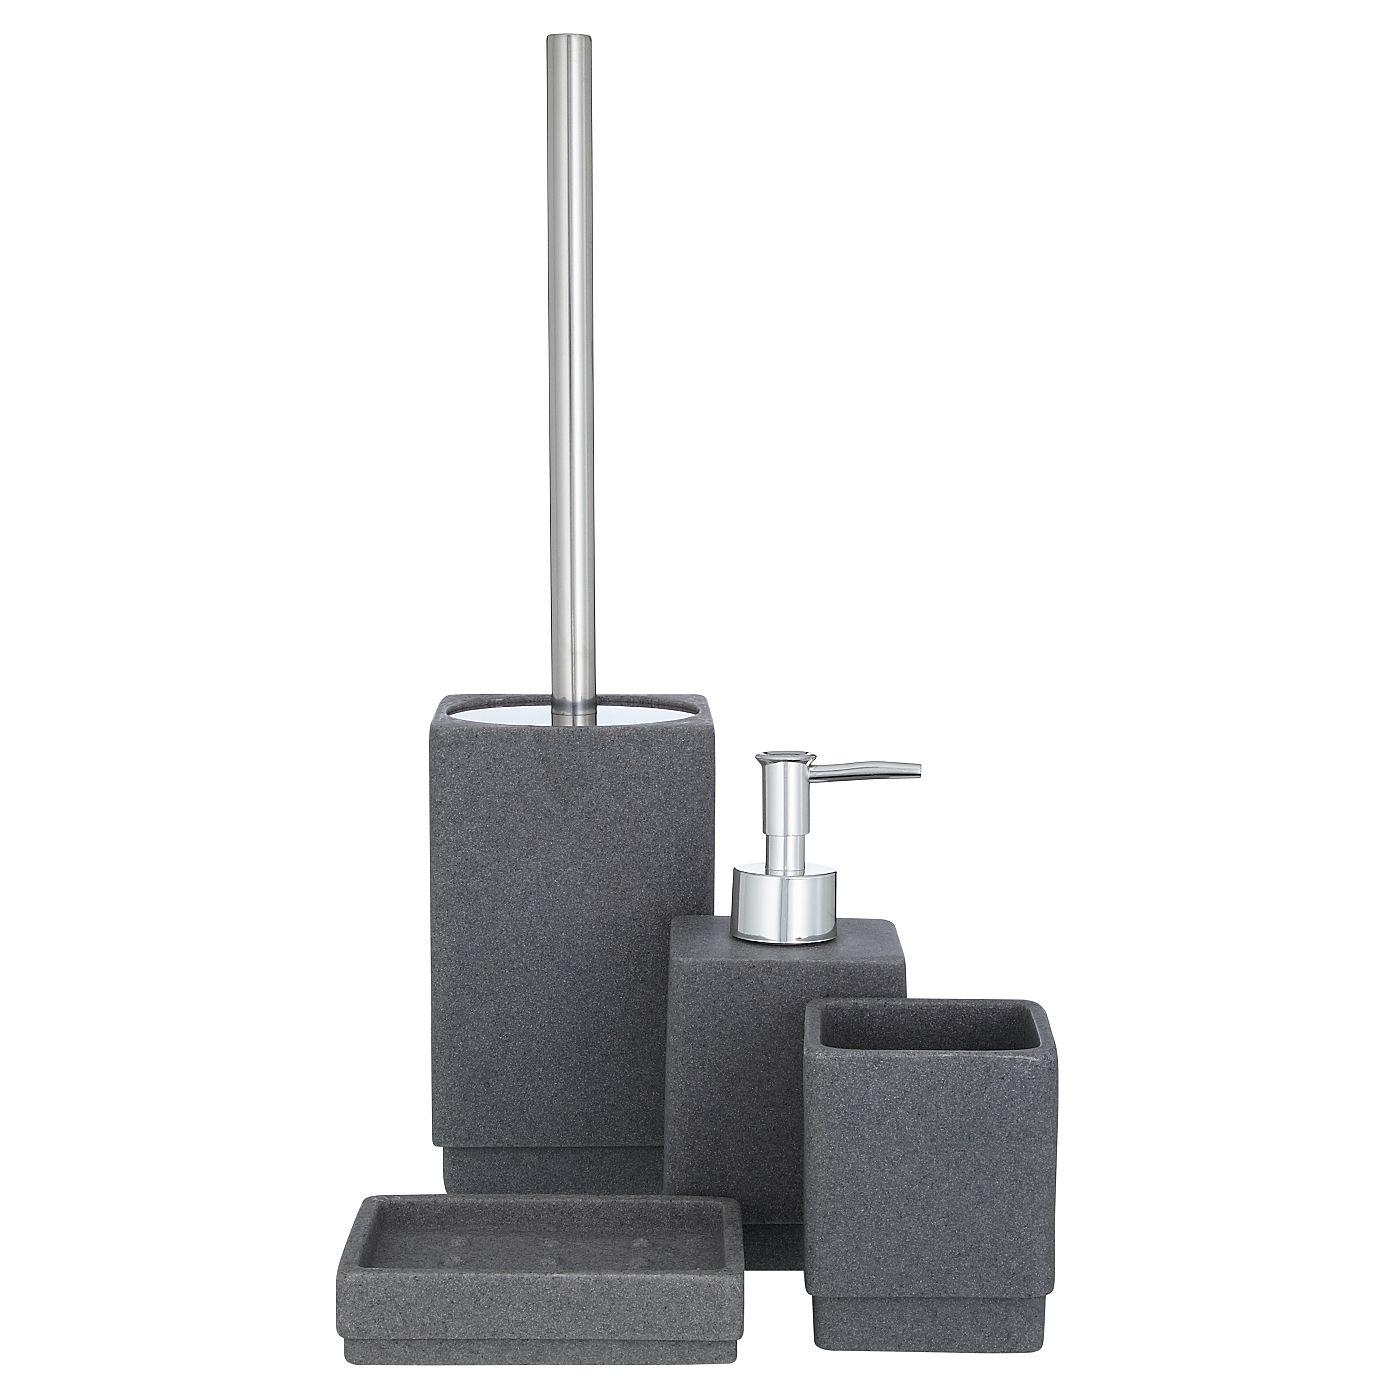 George Home Bathroom Accessory Range Charcoal Sandstone Bathroom Accessories Asda Direct Vintage Bathroom Accessories Bath Accessories Bathroom Sets